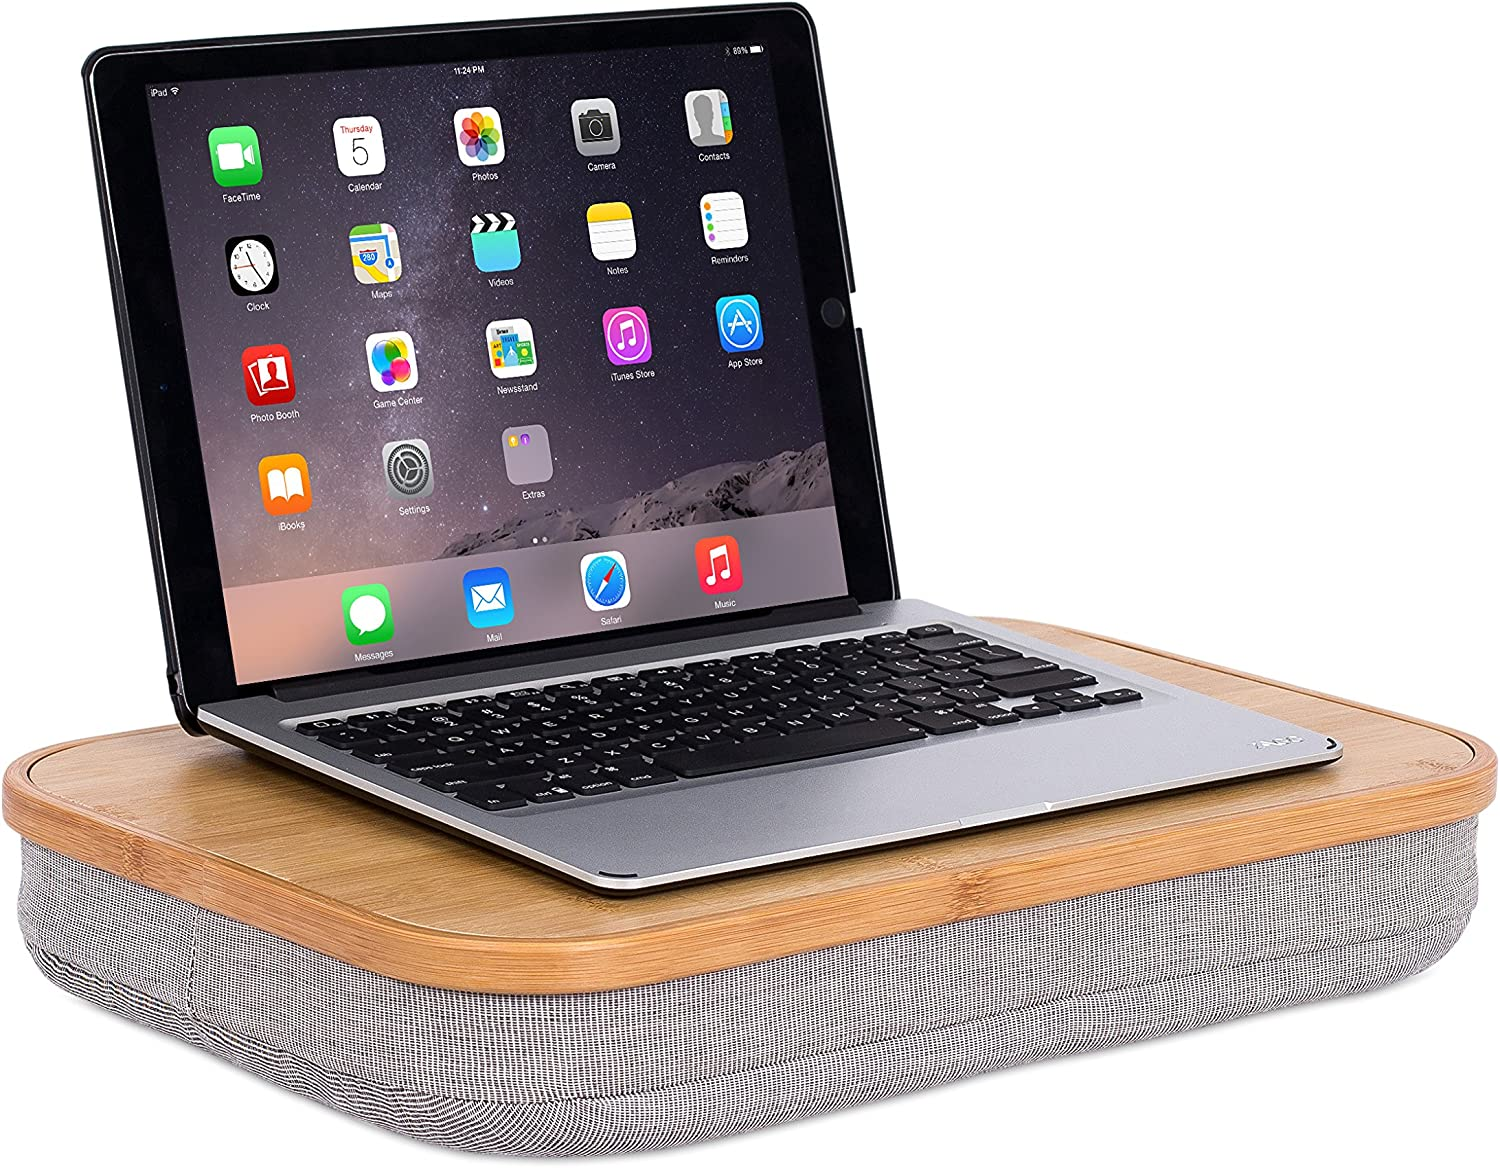 BirdRock Home Lap Desk with Laptop Storage Compartment (Improved) - Work from Home - Pillow Cushioned Laptop Accessories Book Stand - Great for Bed Couch Table Sofa Chair - Food Serving Tray - Grey